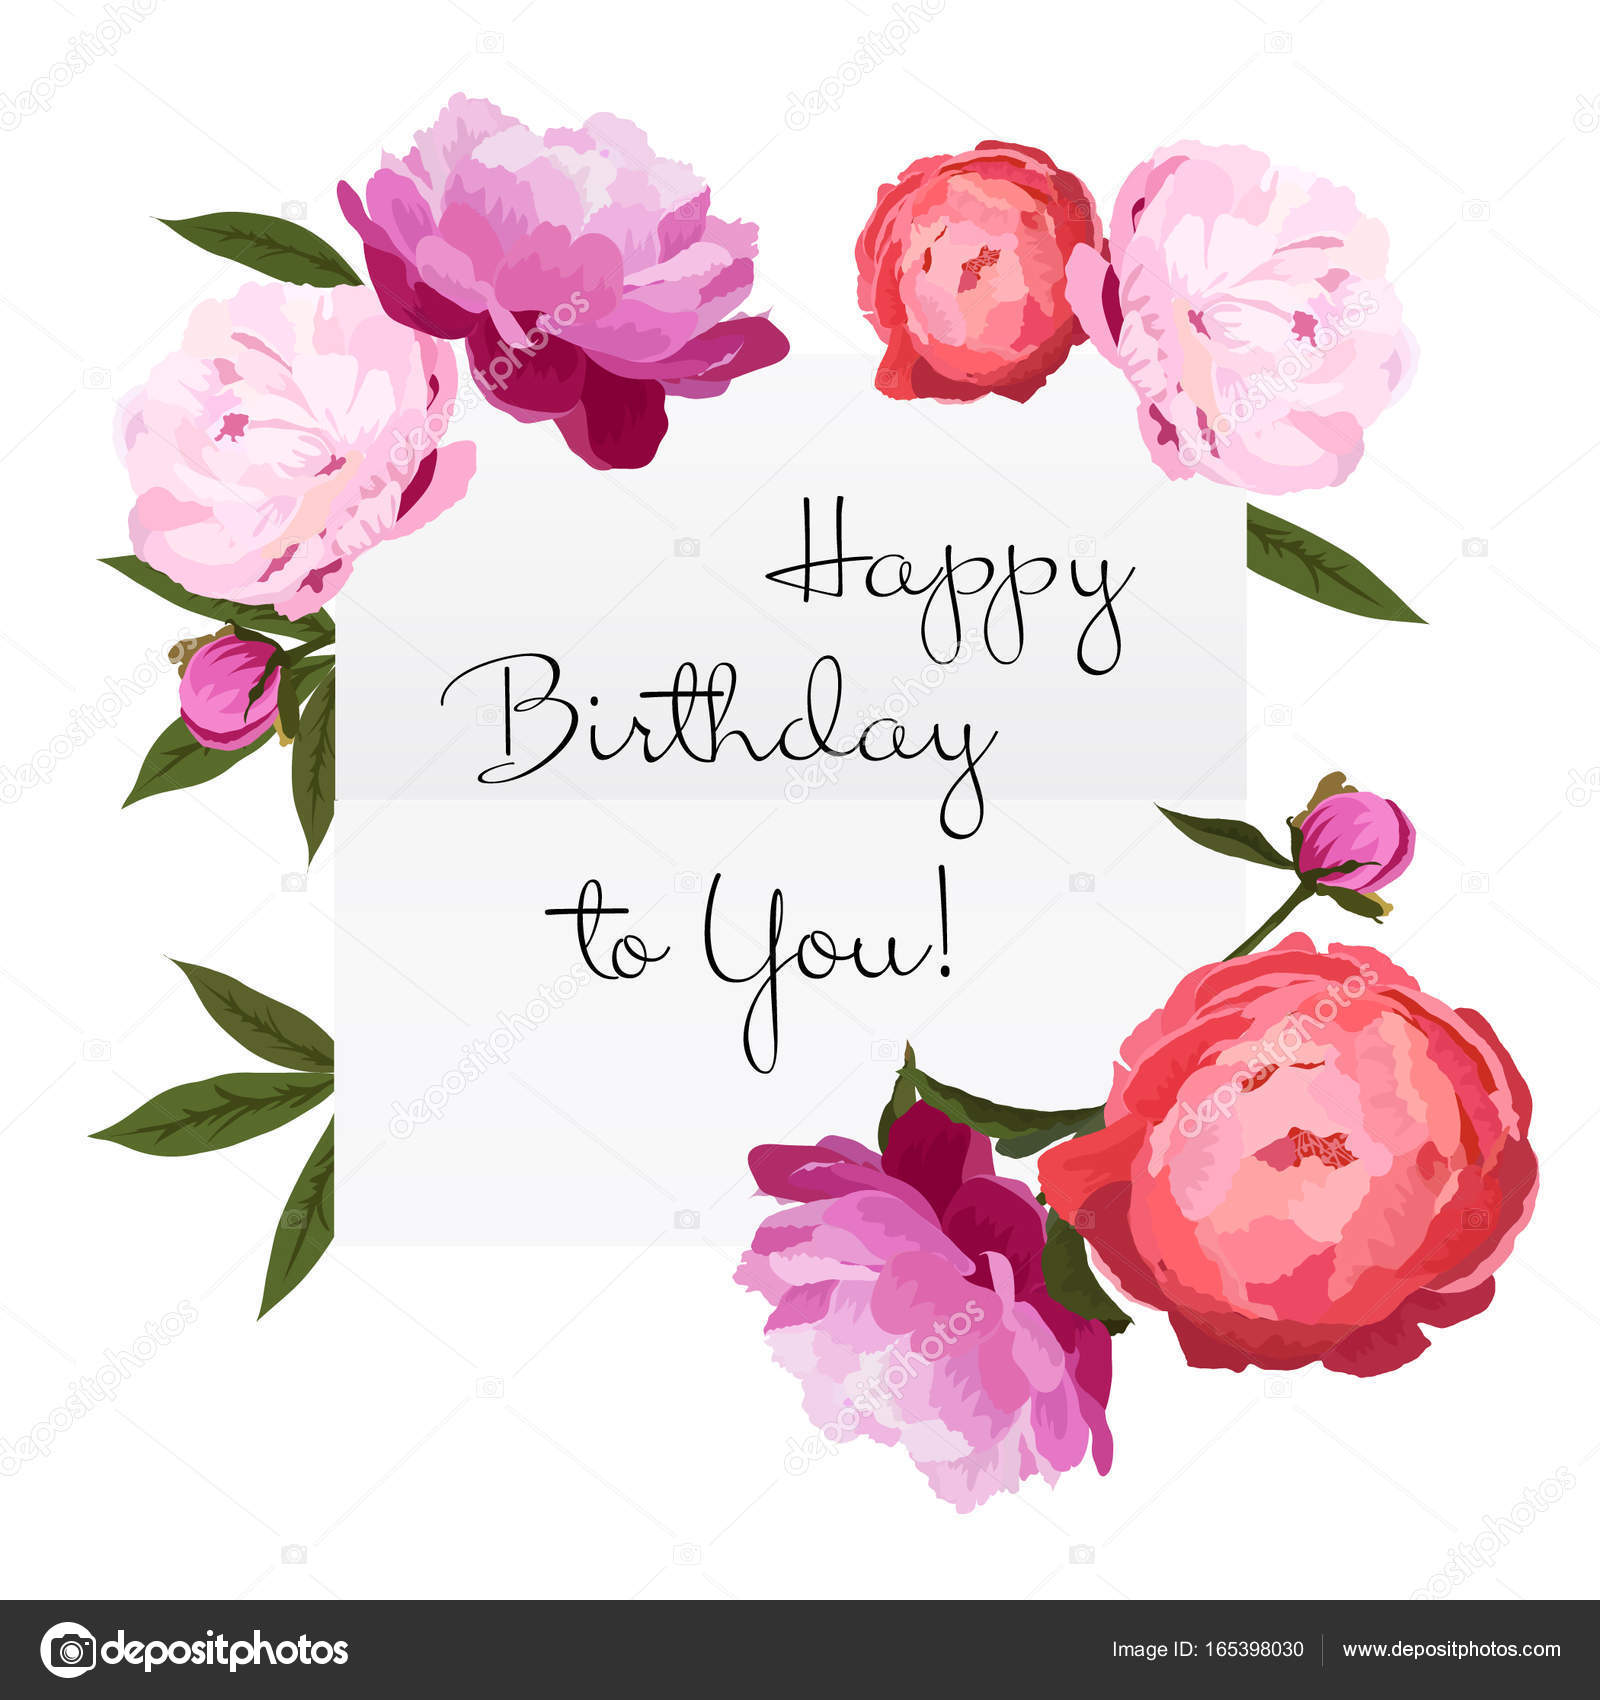 Vector illustration of birthday card with colorful peonies flowers vector illustration of happy birthday card with colorful peonies flowers red pink and violet peonies buttons with green leaves on white background izmirmasajfo